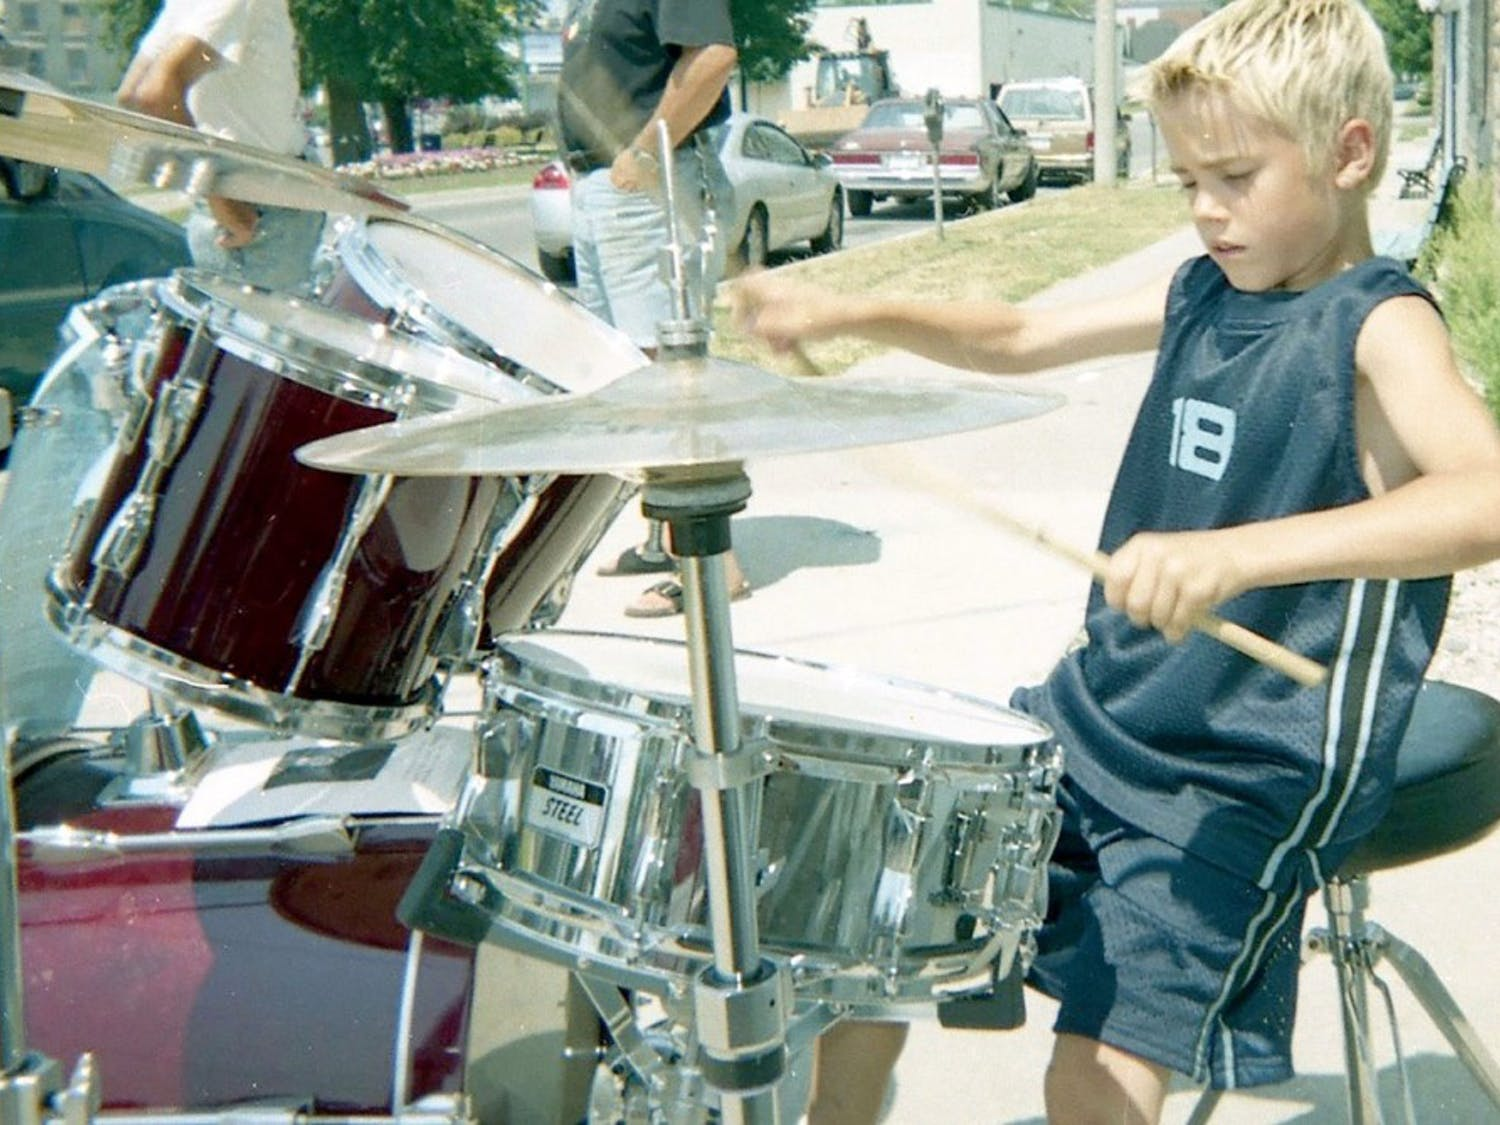 Justin Bieber's hometown is honoring him at the Stratford Perth Museum in Steps to Stardom, an exhibit which highlights Bieber's journey to fame. Bieber was a regular street performer in Stratford, Ontario, as shown above playing drums in 2002.